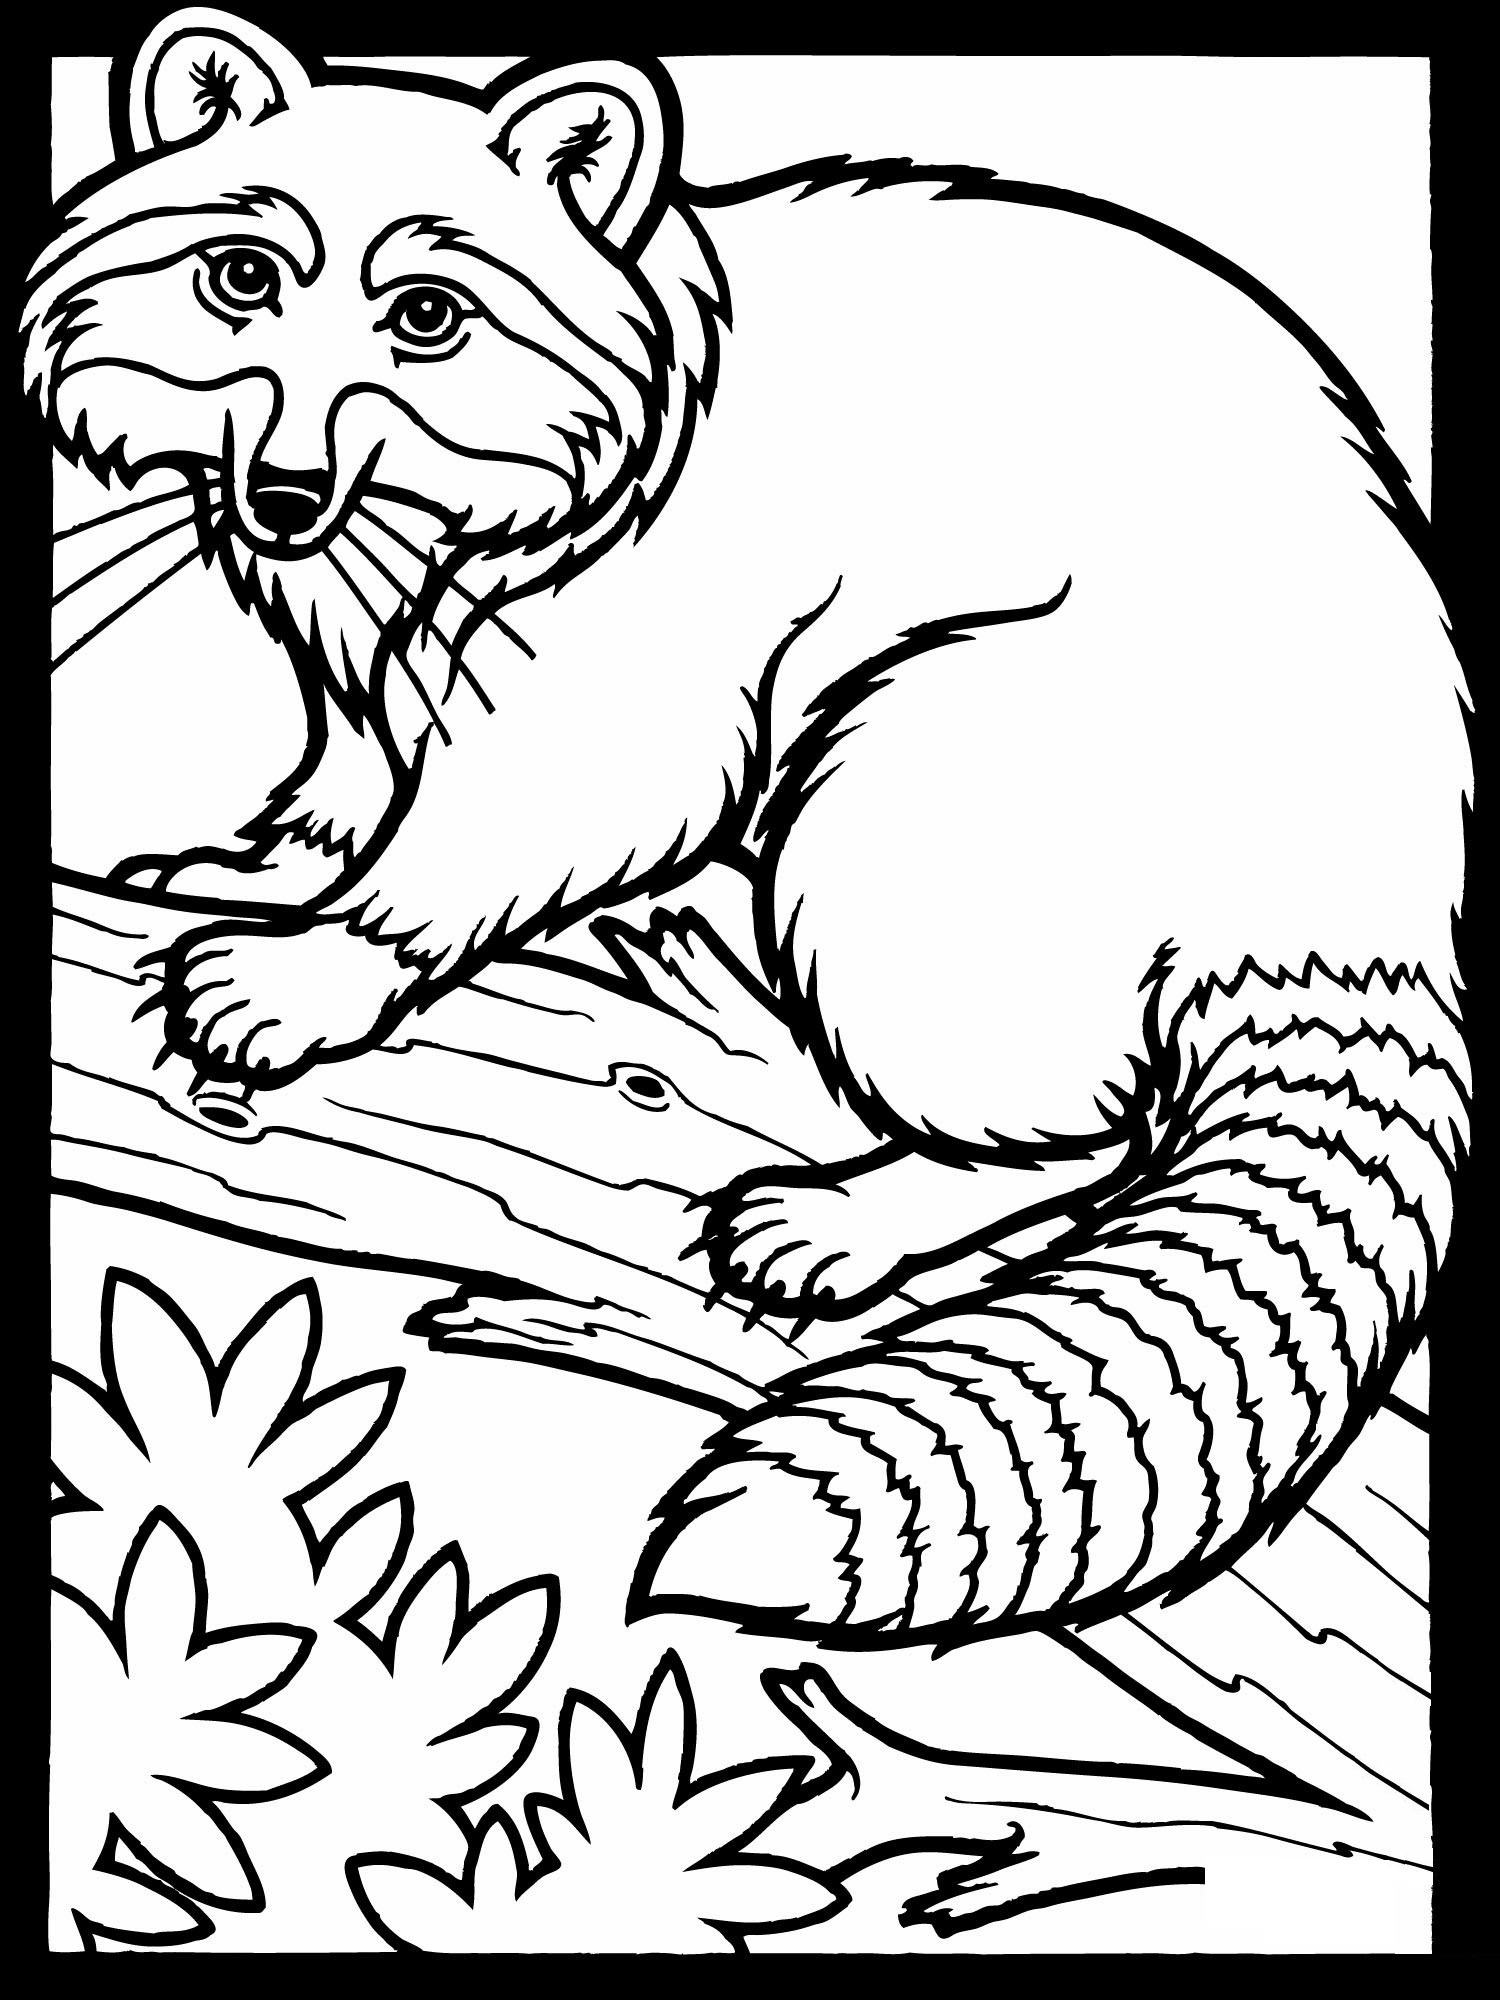 Drawn racoon color Pages Free Raccoon Coloring Free